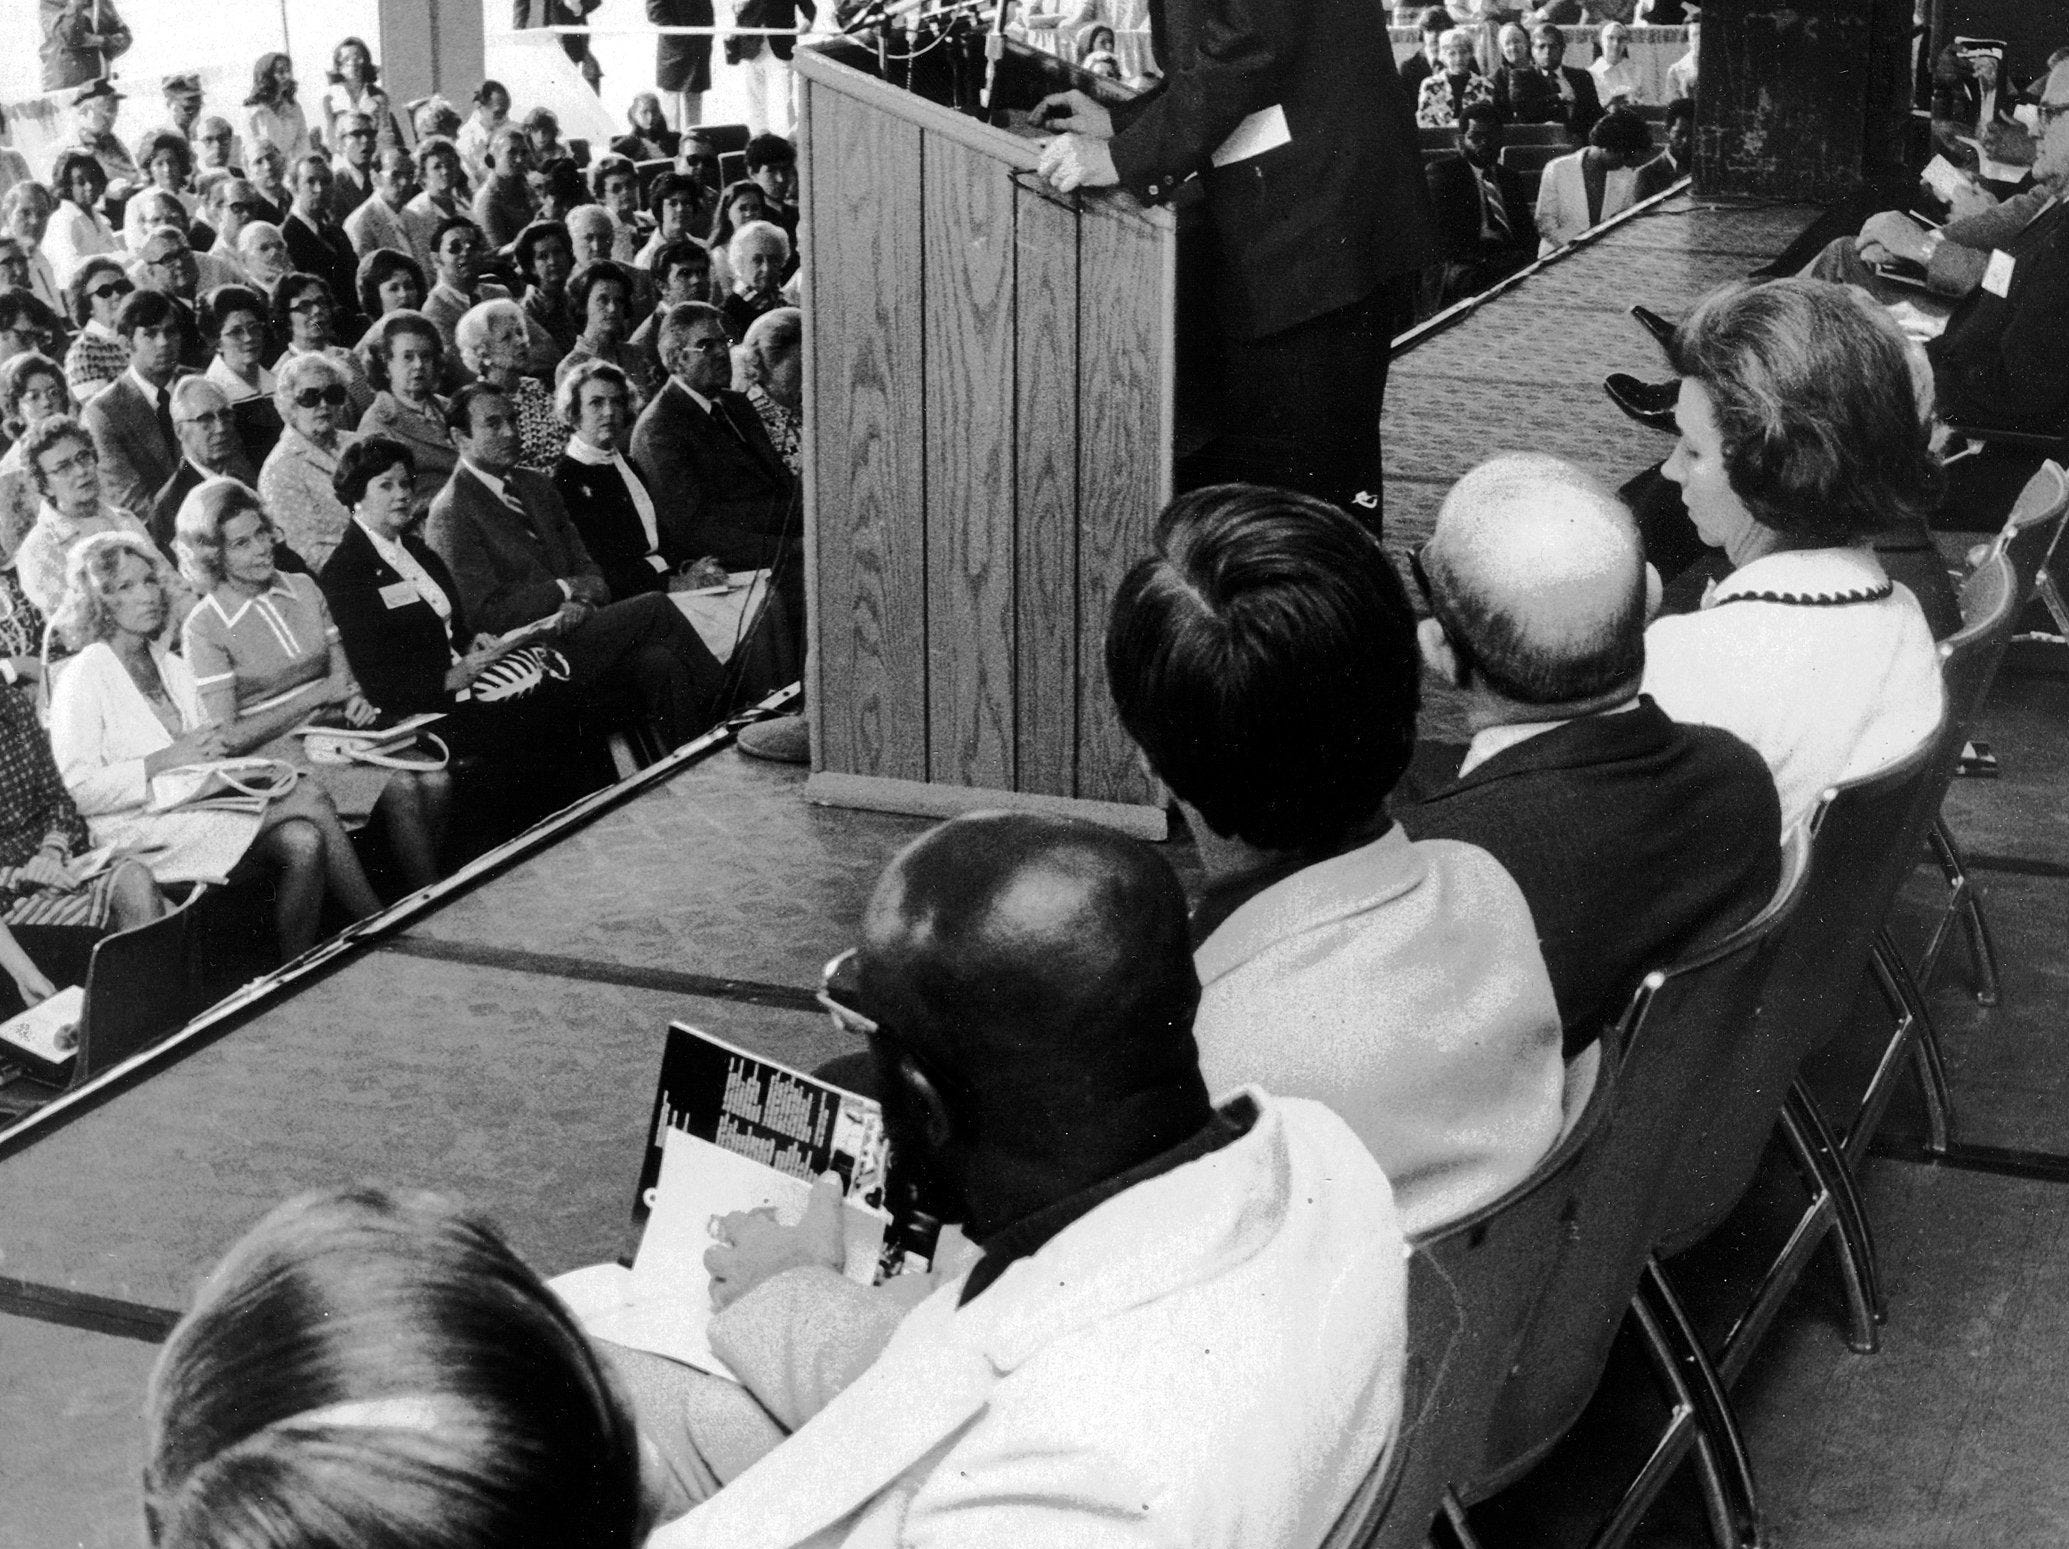 """E.W. """"Ned"""" Cook (at podium) speaks at the dedication of the Memphis Cook Convention Center on 11 May 1974. The center was named for Cook's father, Gen. Everett R. Cook."""